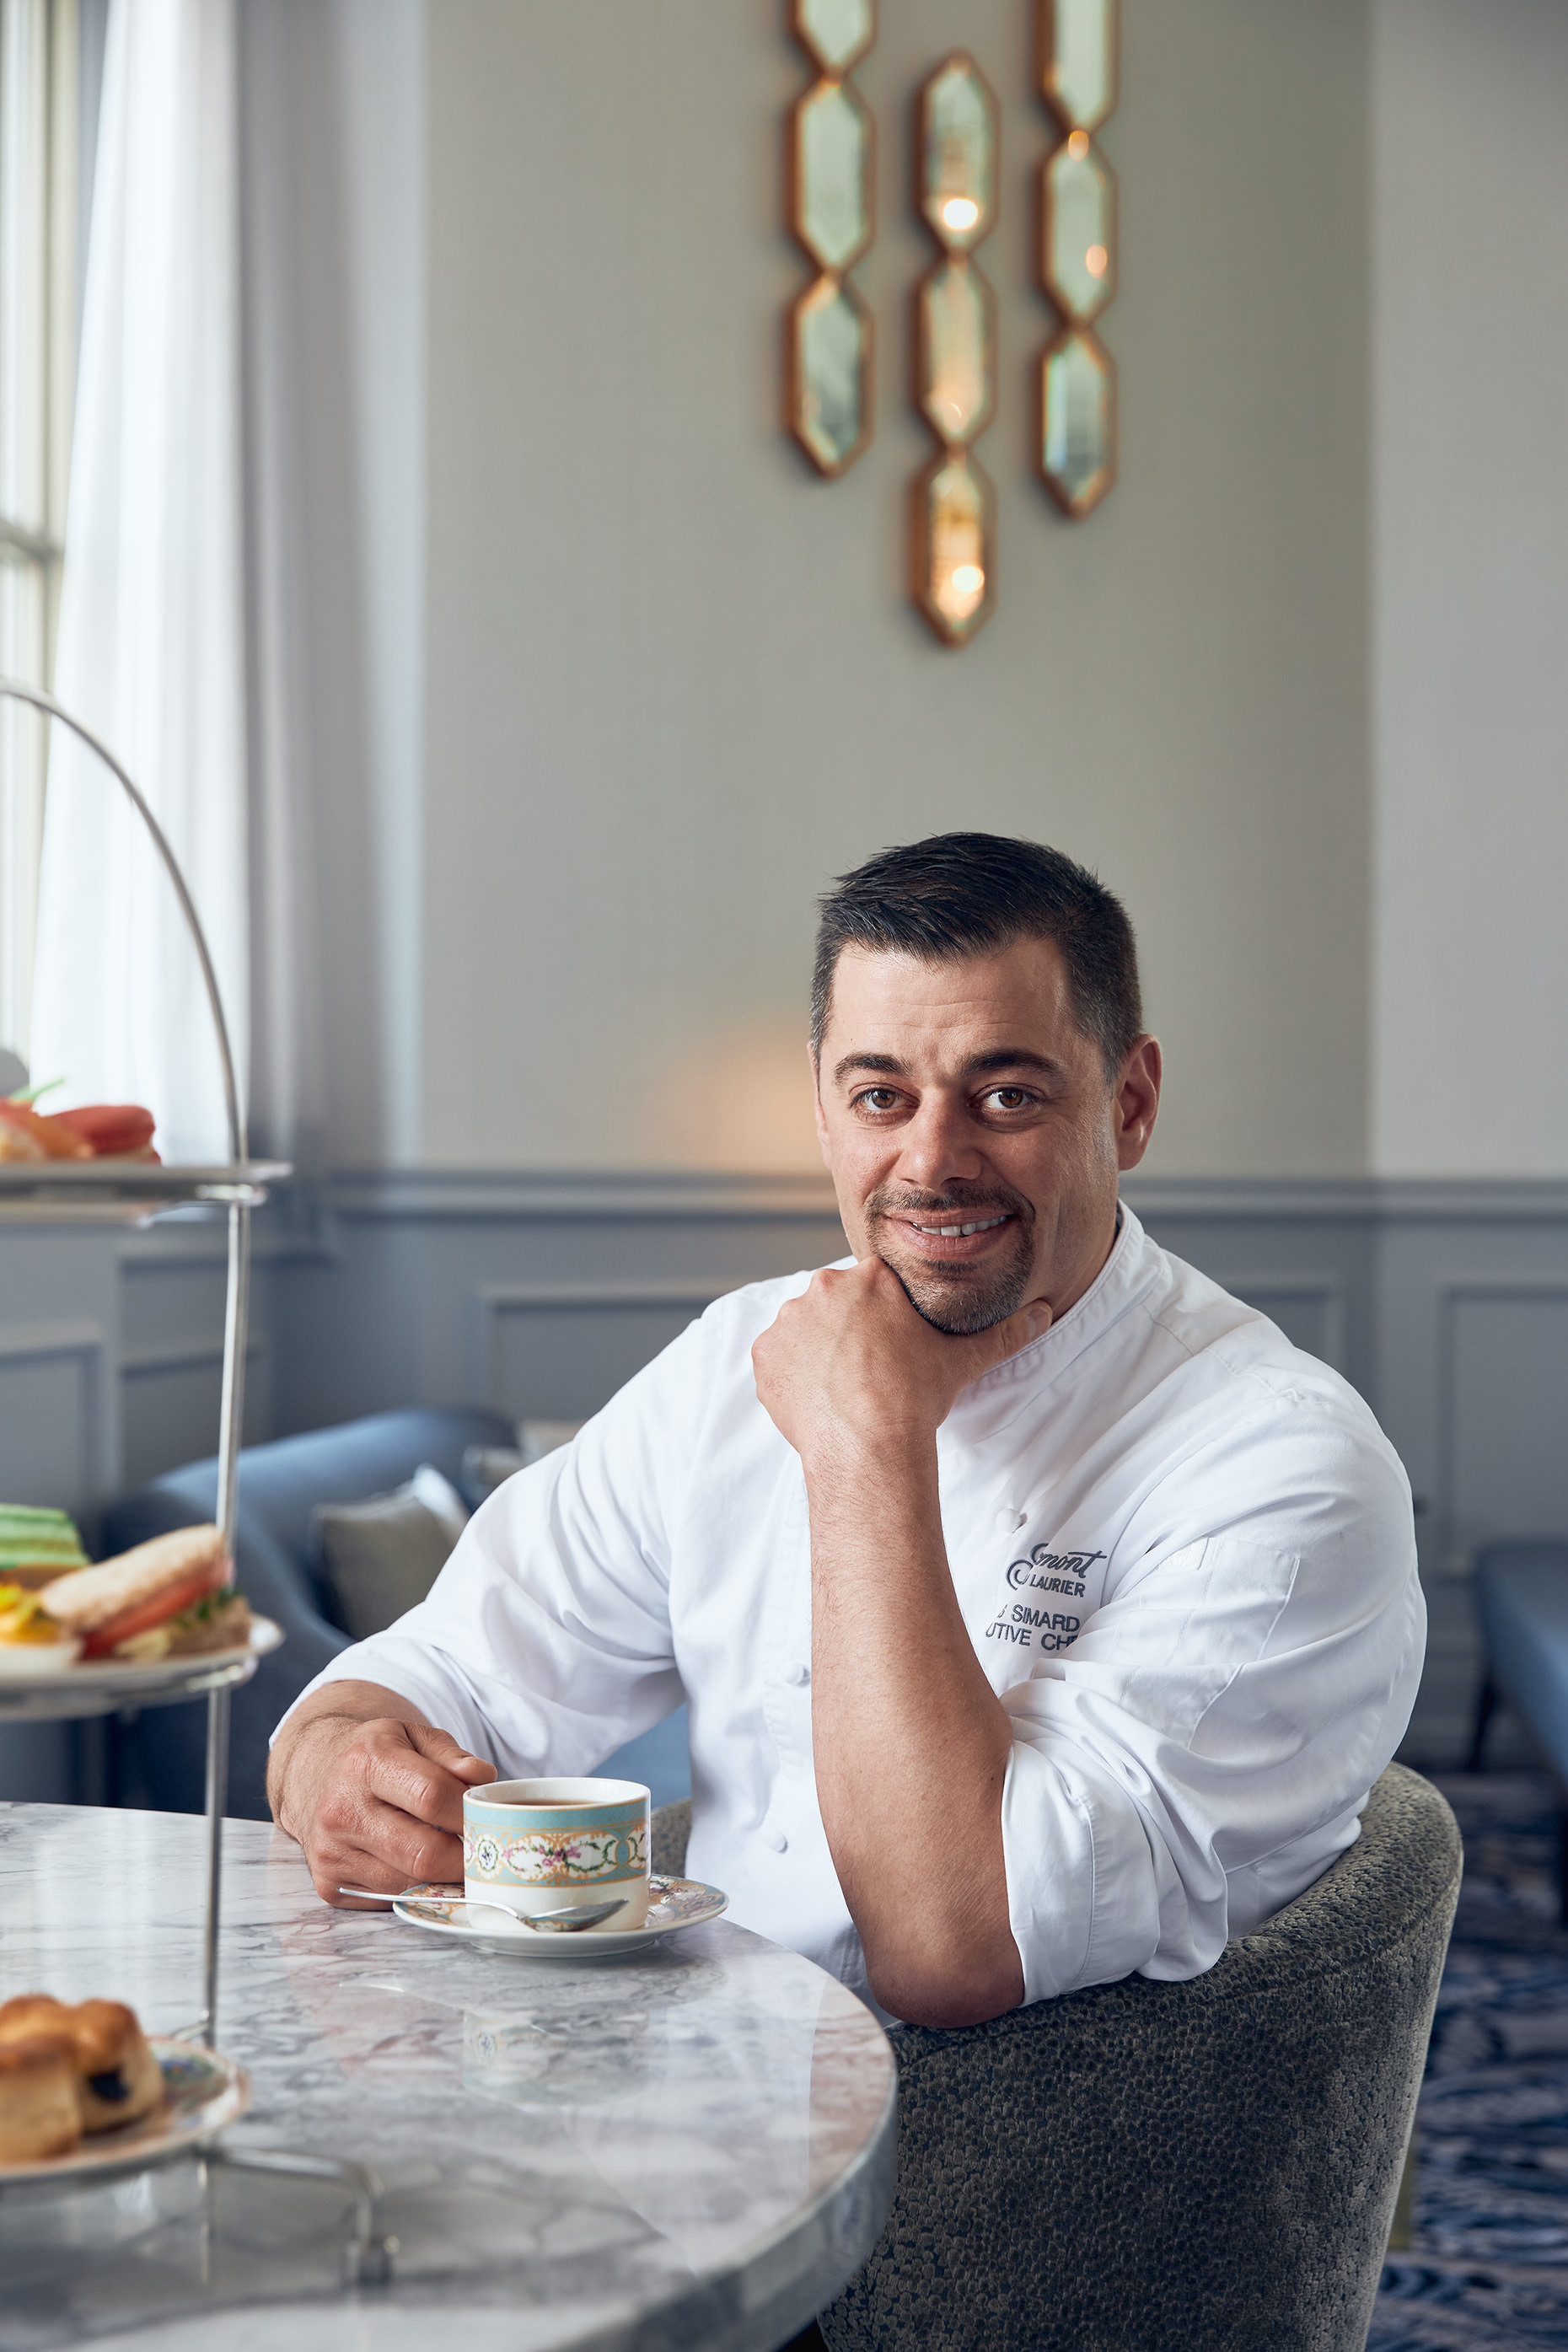 Editorial portrait and food photographer Matthew Liteplo took this Chef